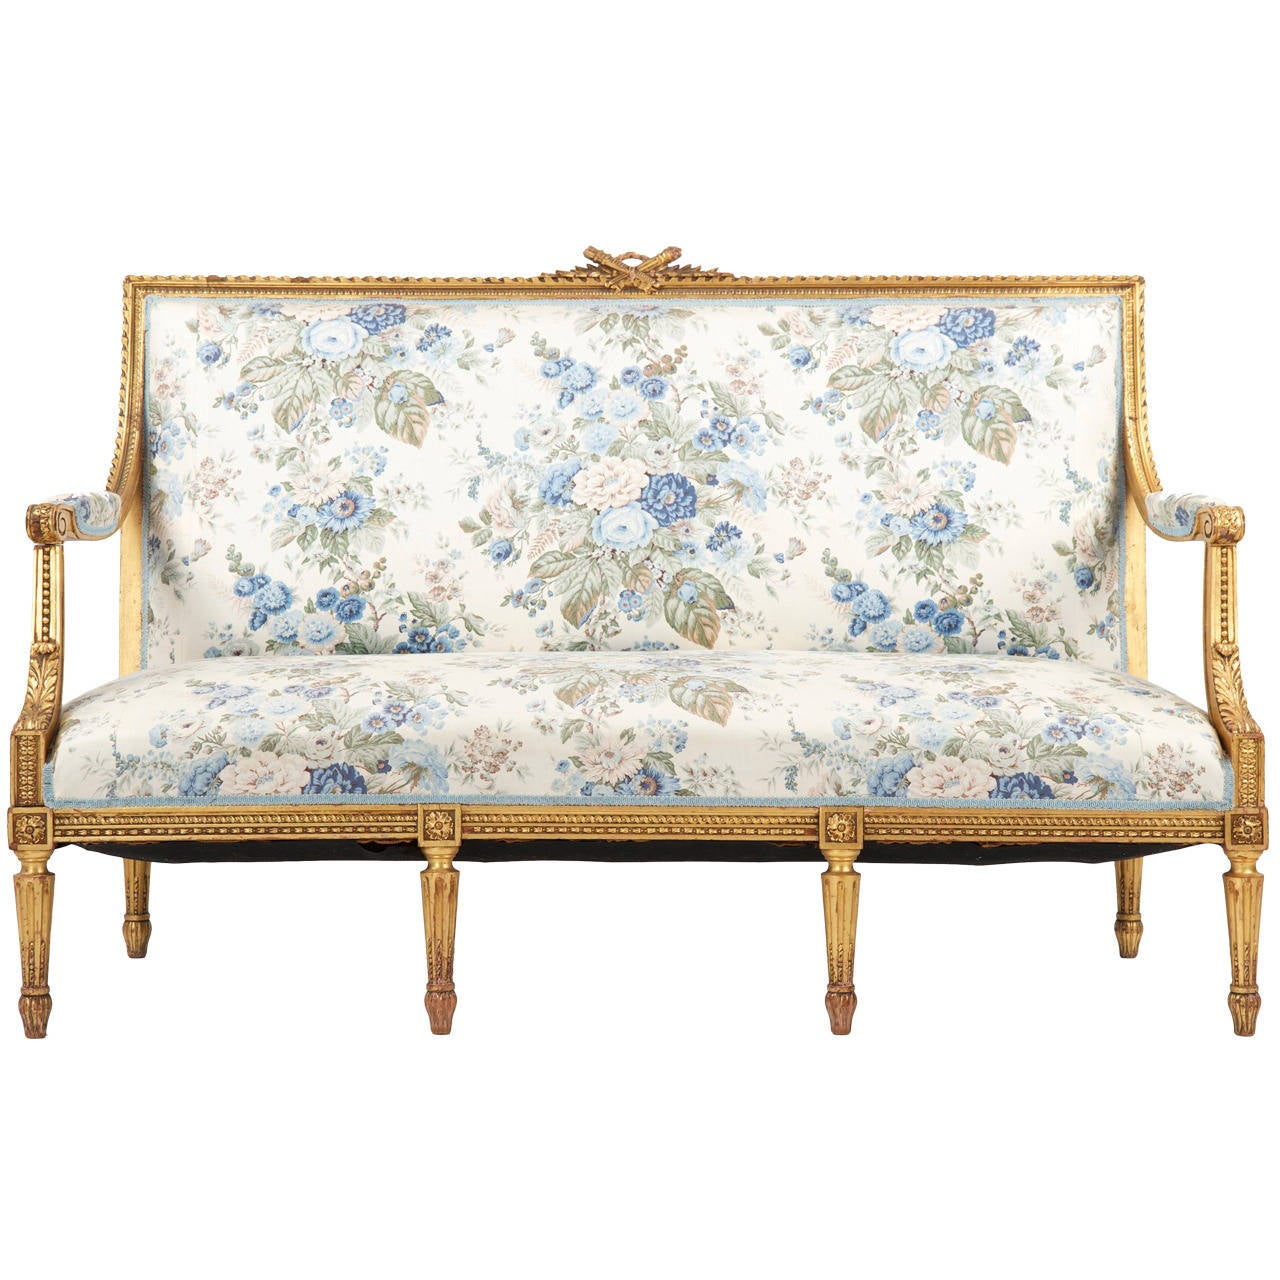 French Louis Xvi Style Giltwood Antique Settee Sofa Canape C 1900 For